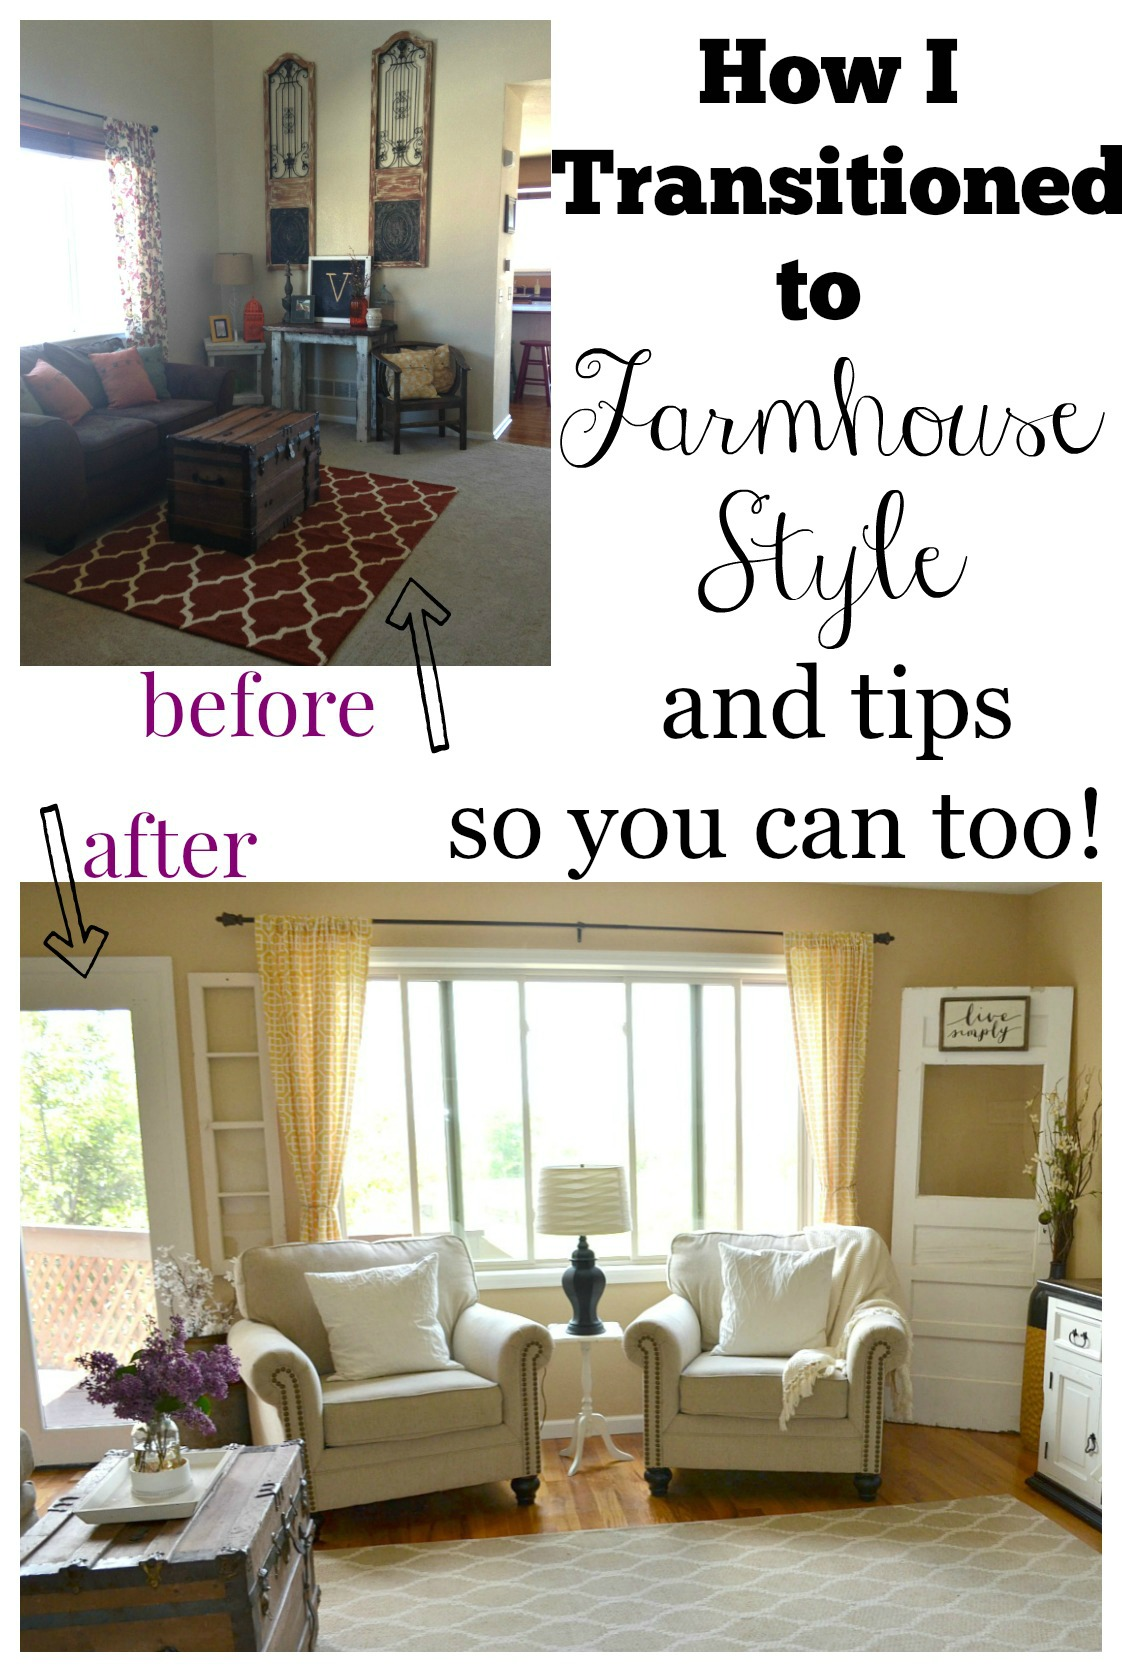 How I Transitioned to Farmhouse Style